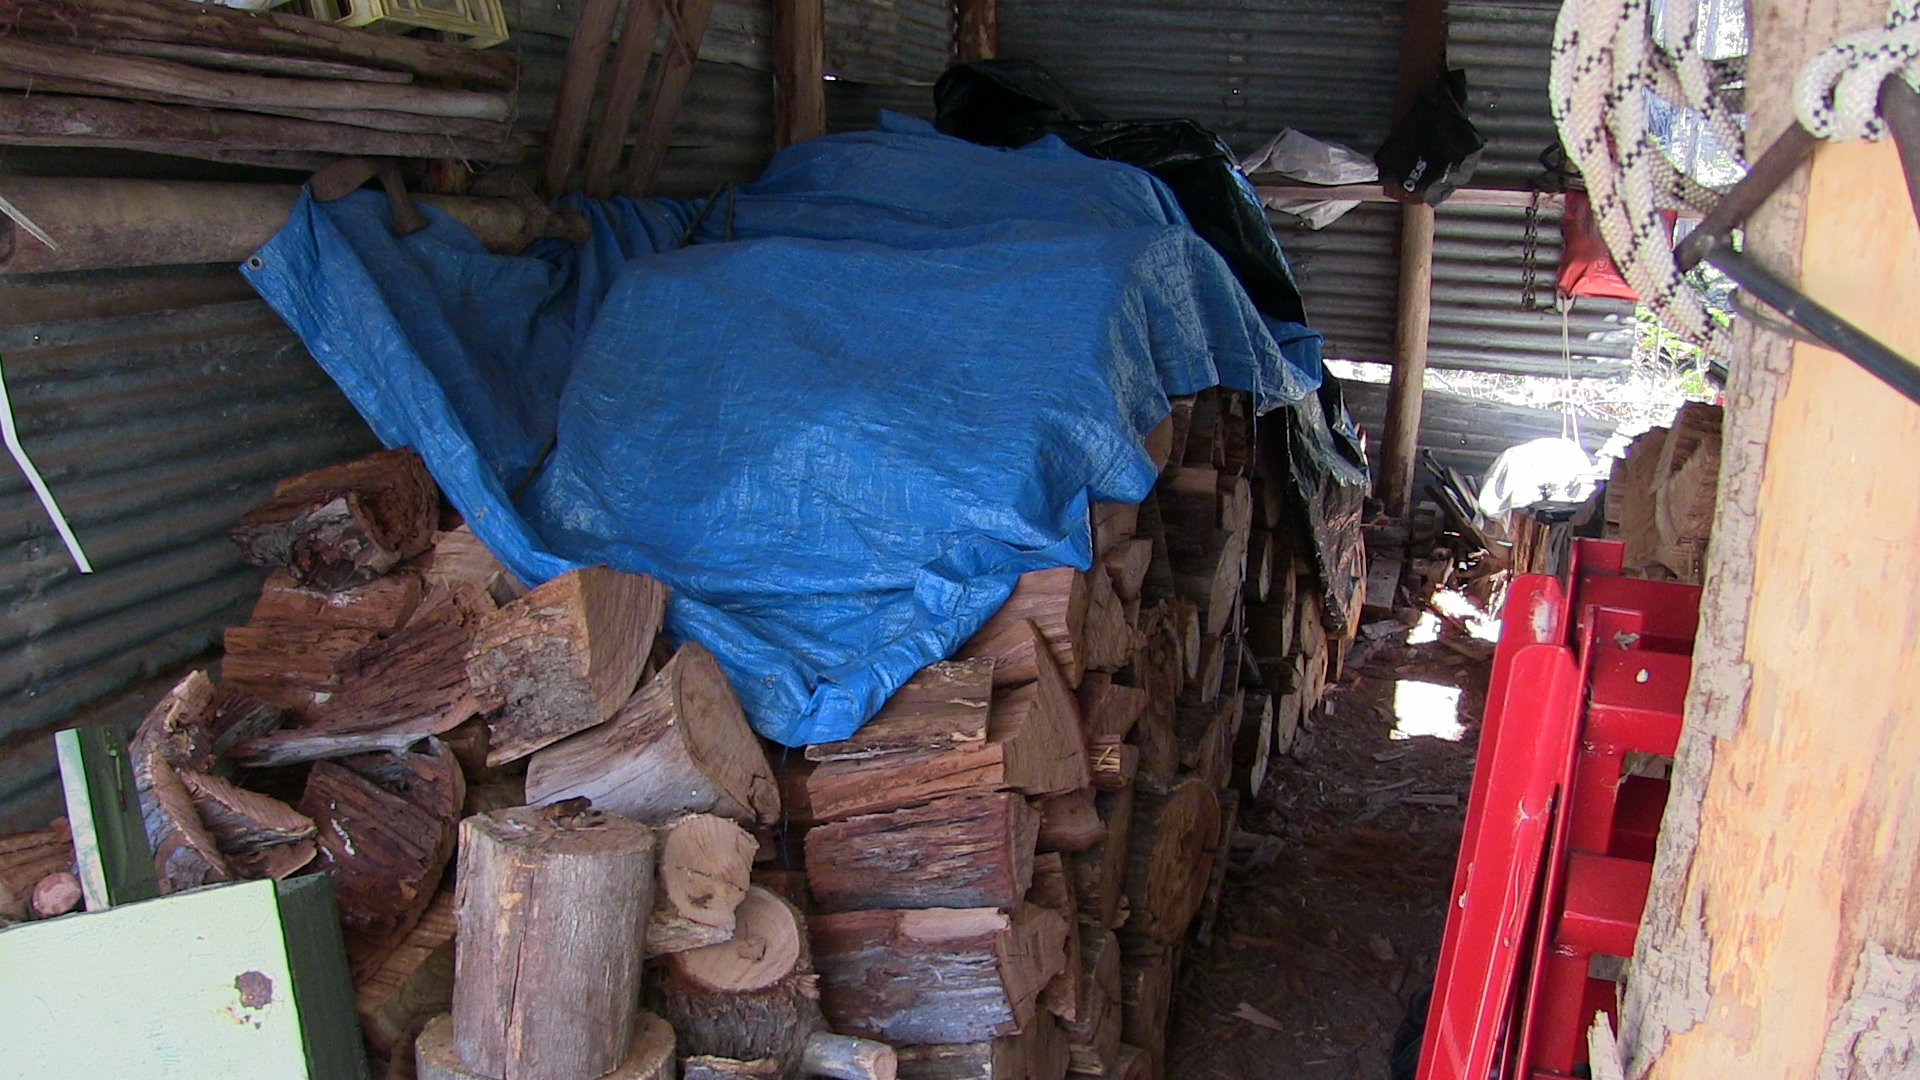 Collecting-Firewood-009-REDUCED.jpg